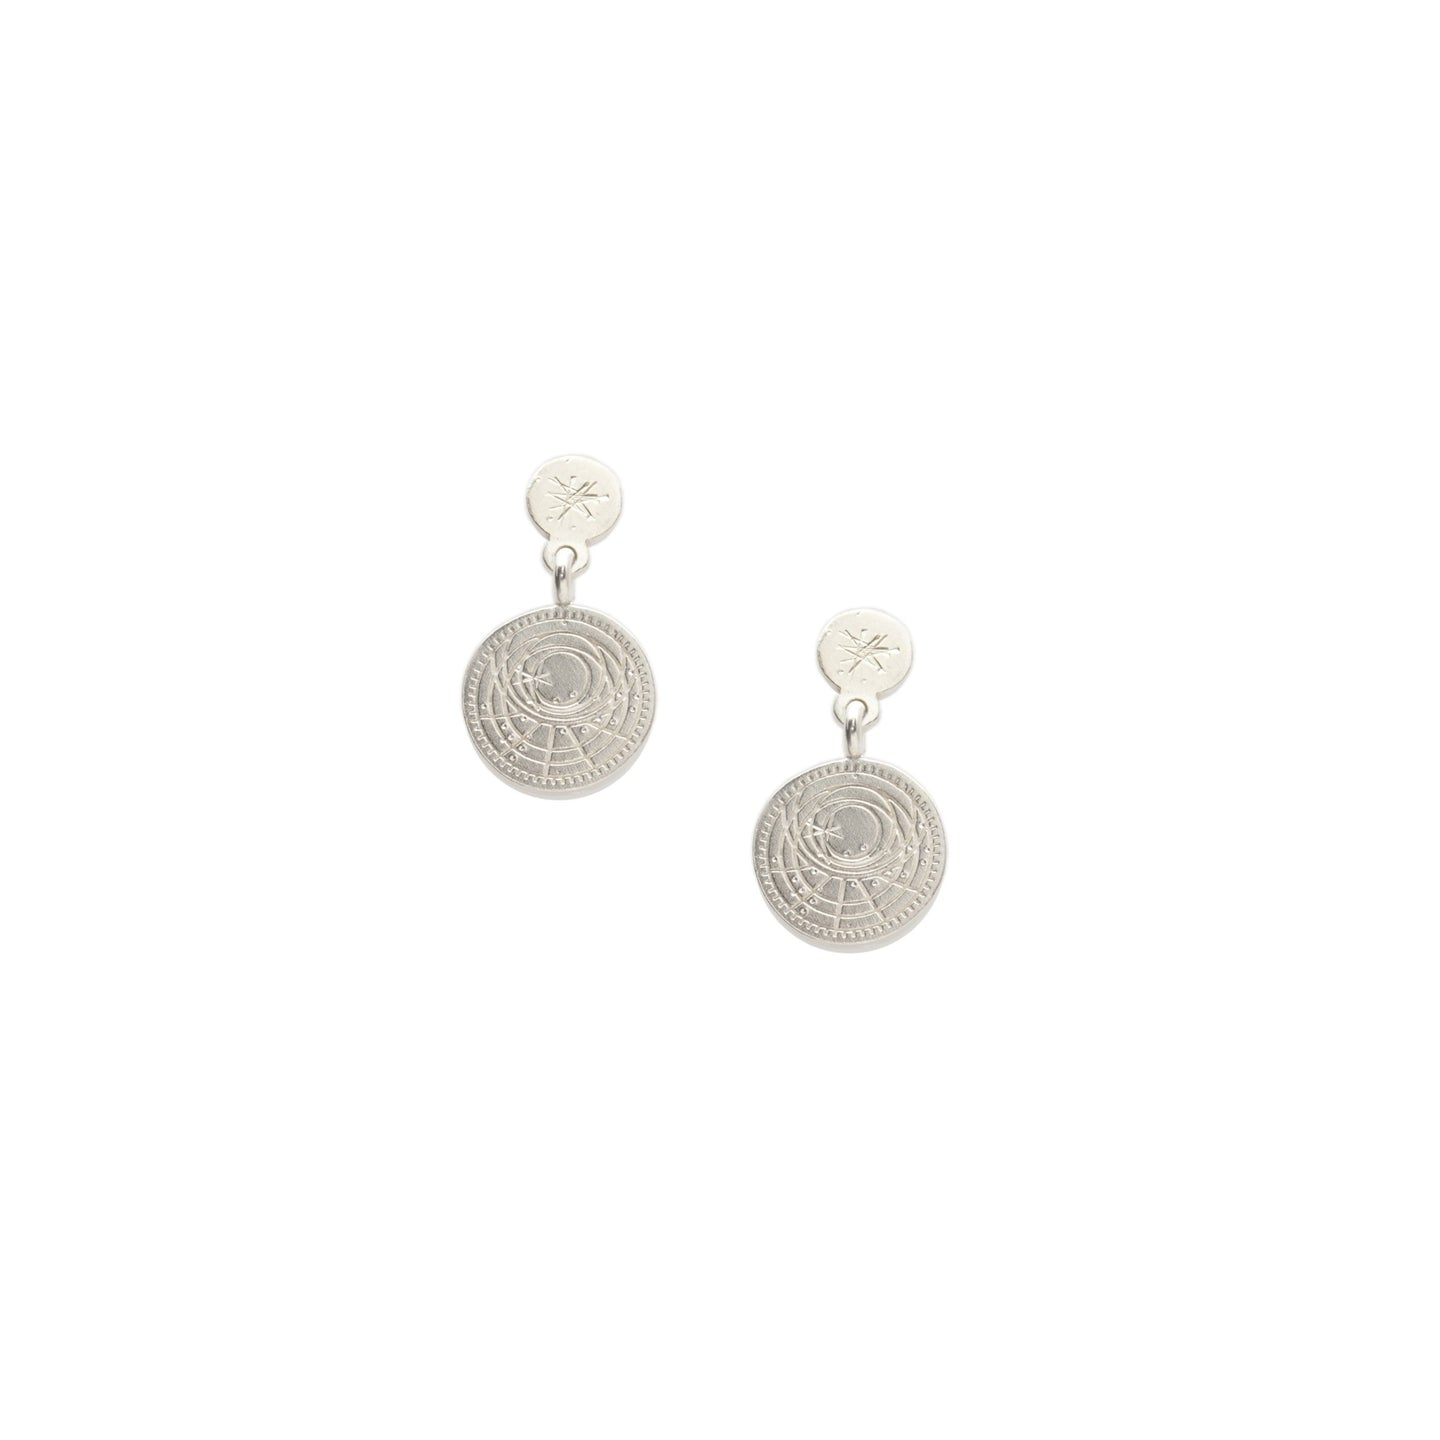 Astrolabe and Star Earrings